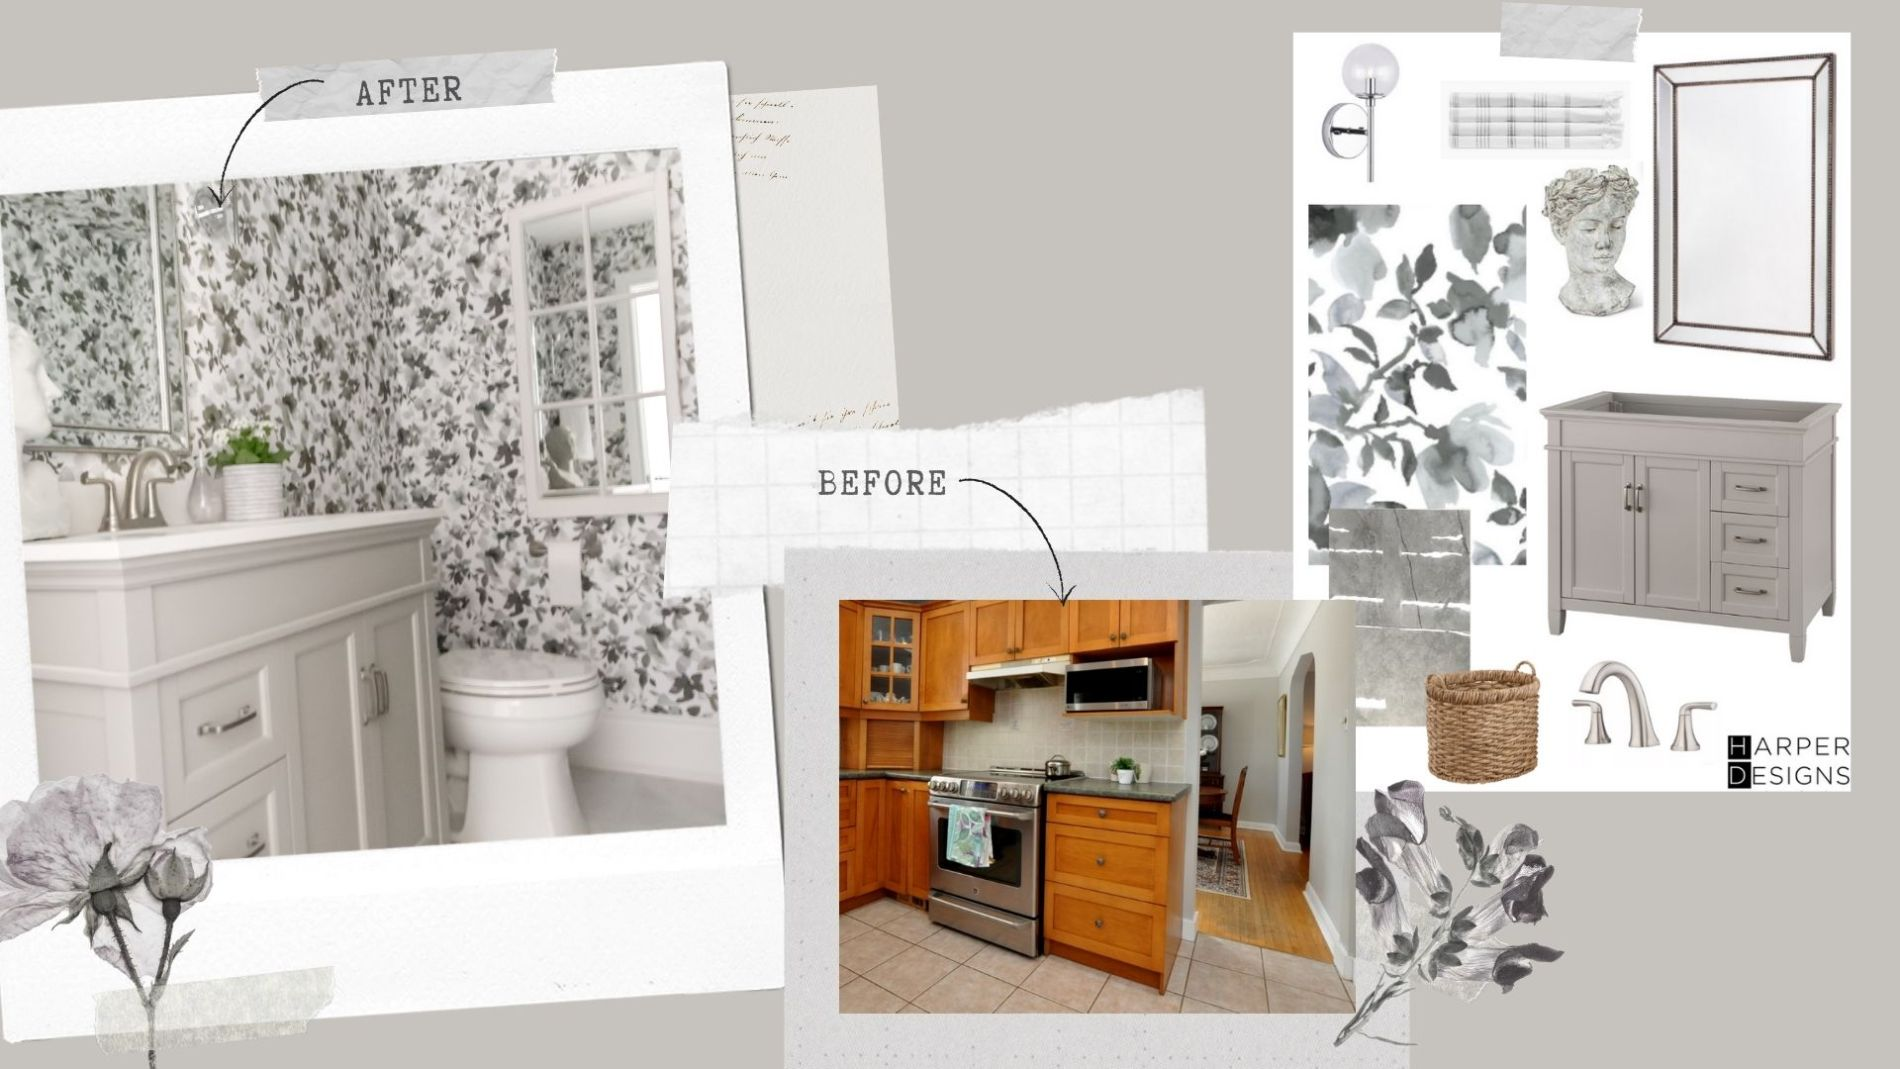 Before and After Bathroom Makeover by Jaclyn Harper of Harper Designs